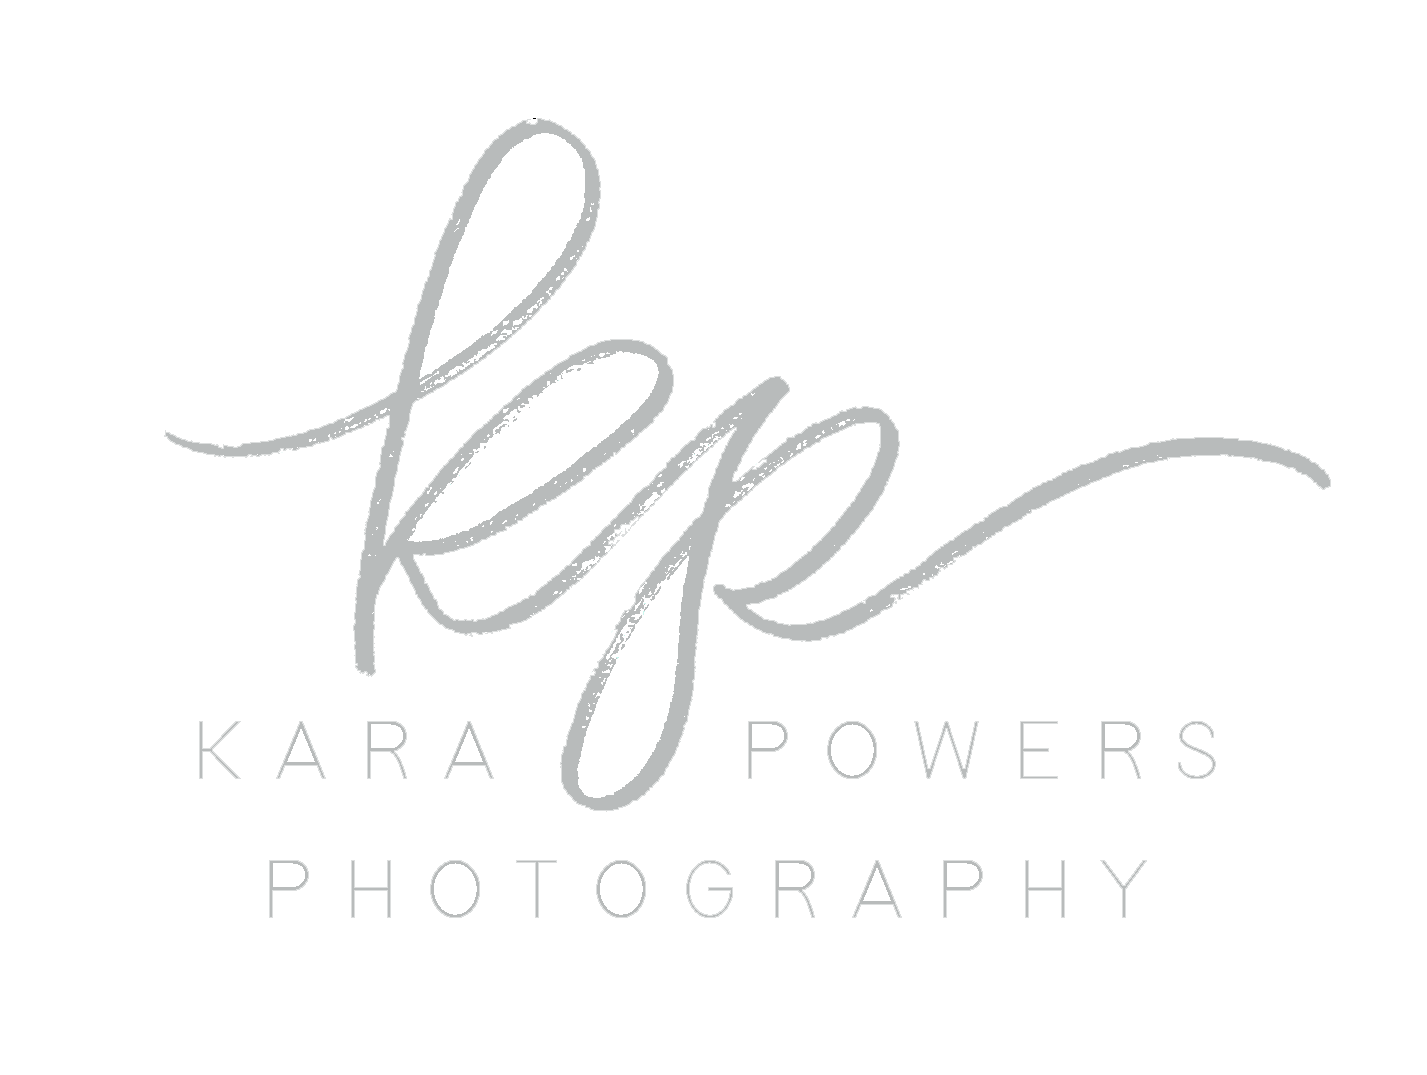 Kara Powers Photography